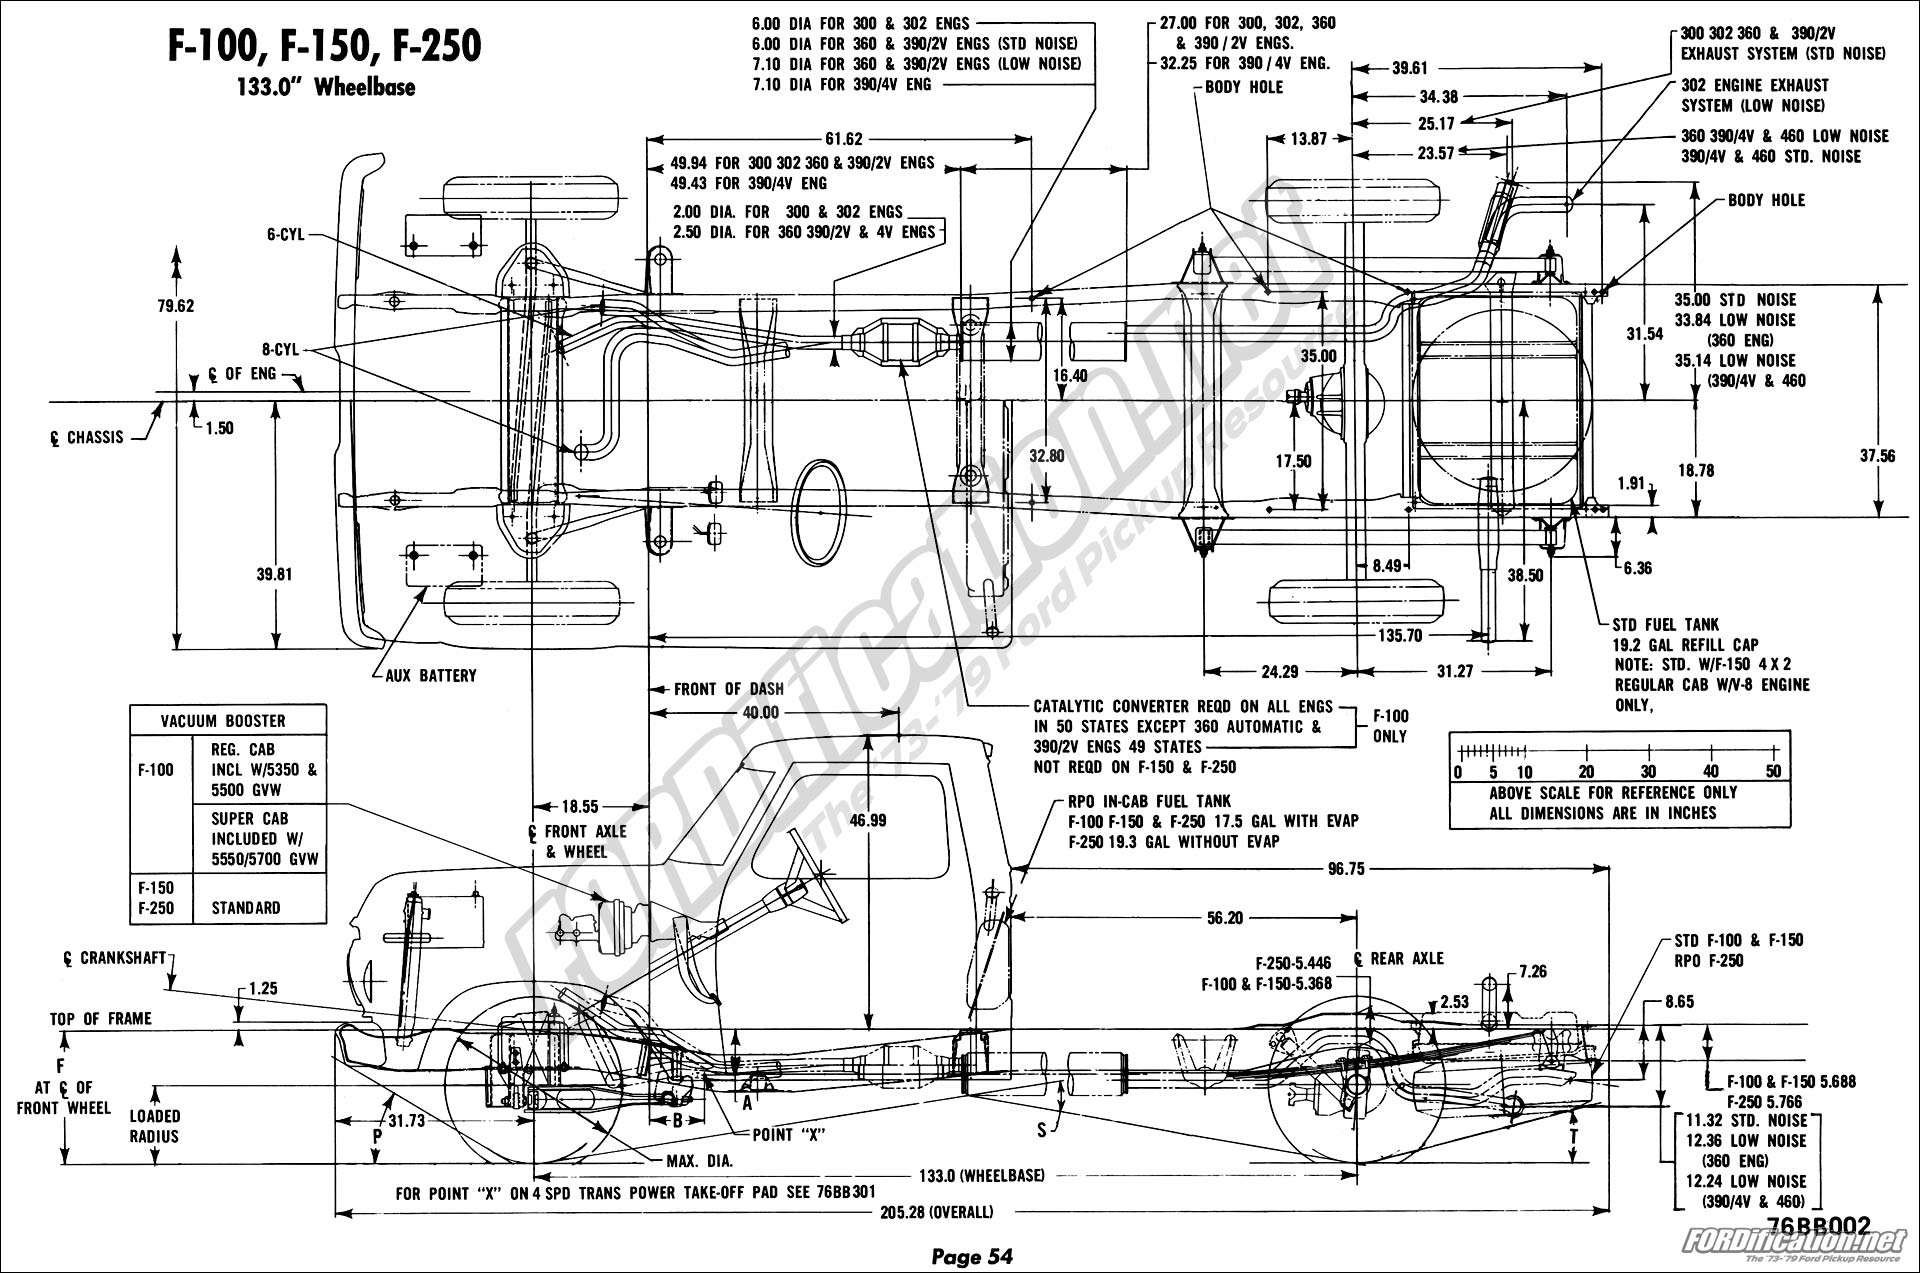 Parts Illustrations furthermore Wiring as well 1956 Chevy Ignition Wiring Diagram additionally Diagrams 600845 1985 Corvette Wiring Diagram L98 Starter Ls1 Mifinderco together with Wiring. on 1955 ford wiring diagram